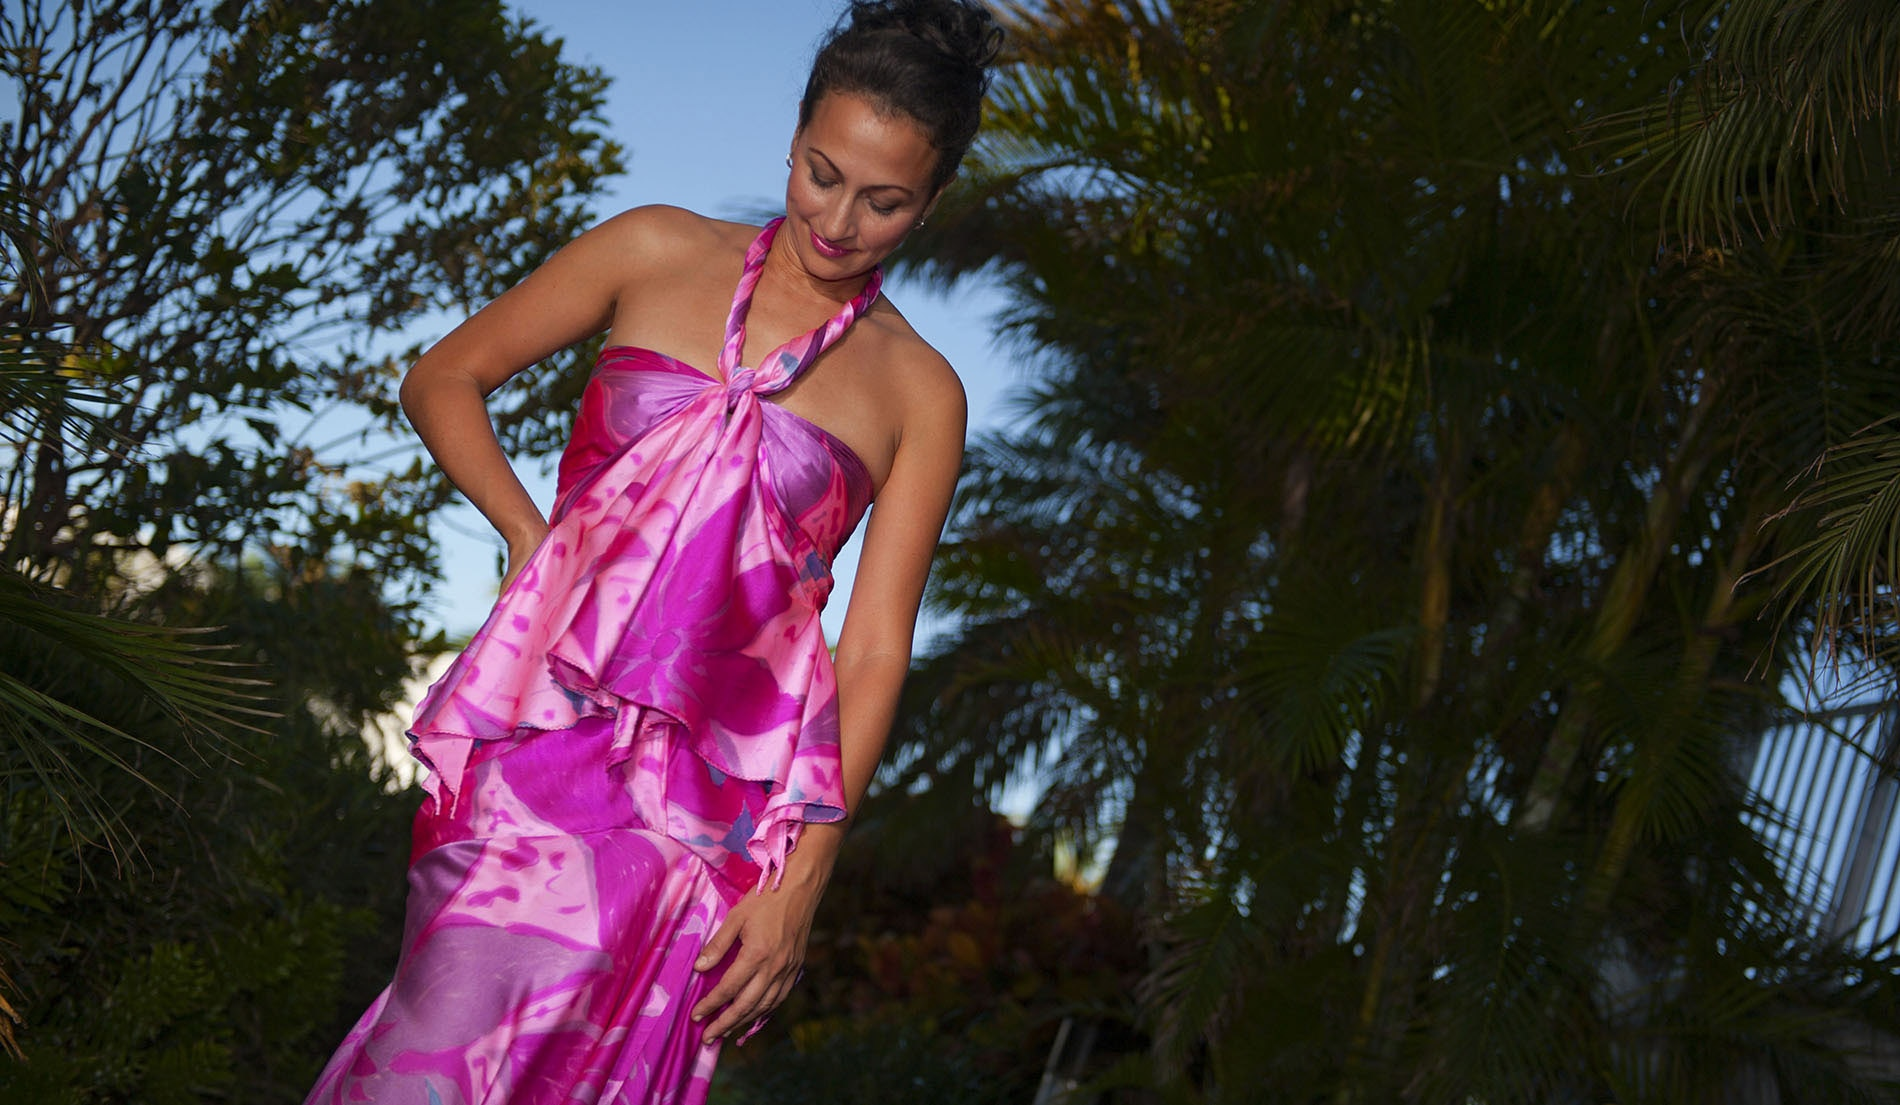 Lift Separate Halter Mermaid Style Beach Wedding Dresses - Martinique - Look 4 front